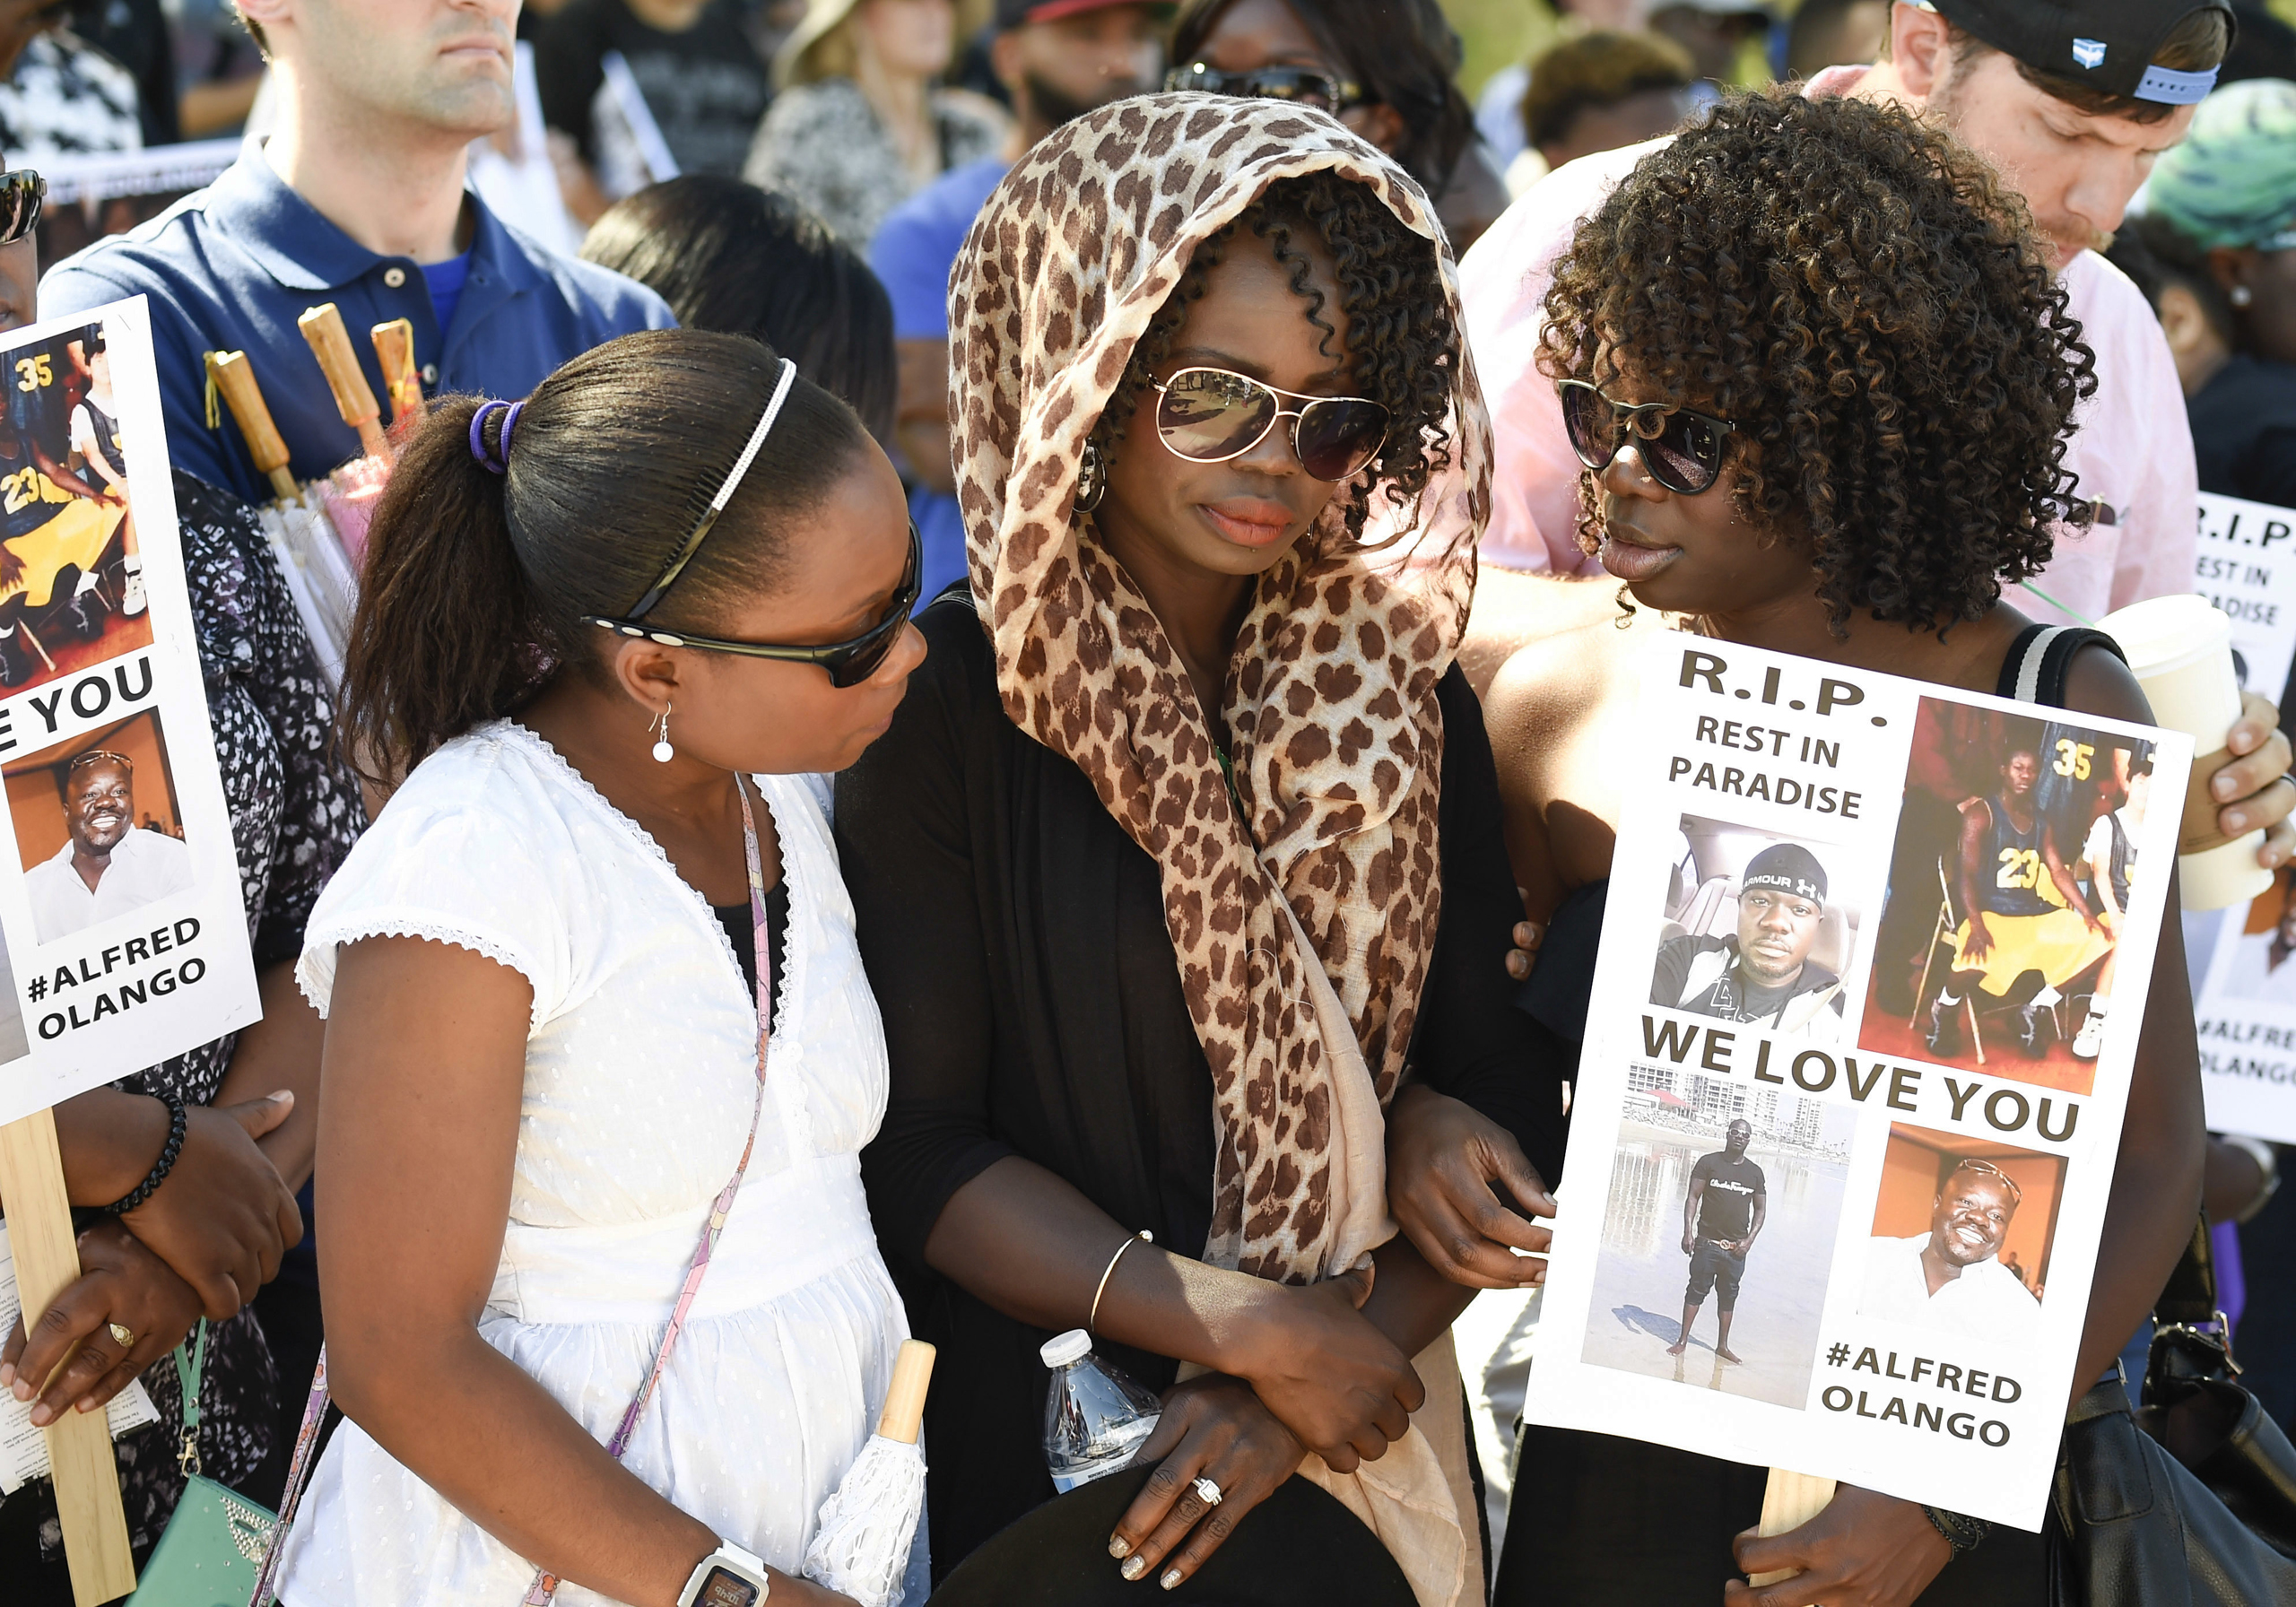 Winnie Olango, center, sister of Alfred Olango, is consoled by two friends before a march in reaction to the fatal police shooting of her brother, in El Cajon, Calif., on Oct. 1, 2016.